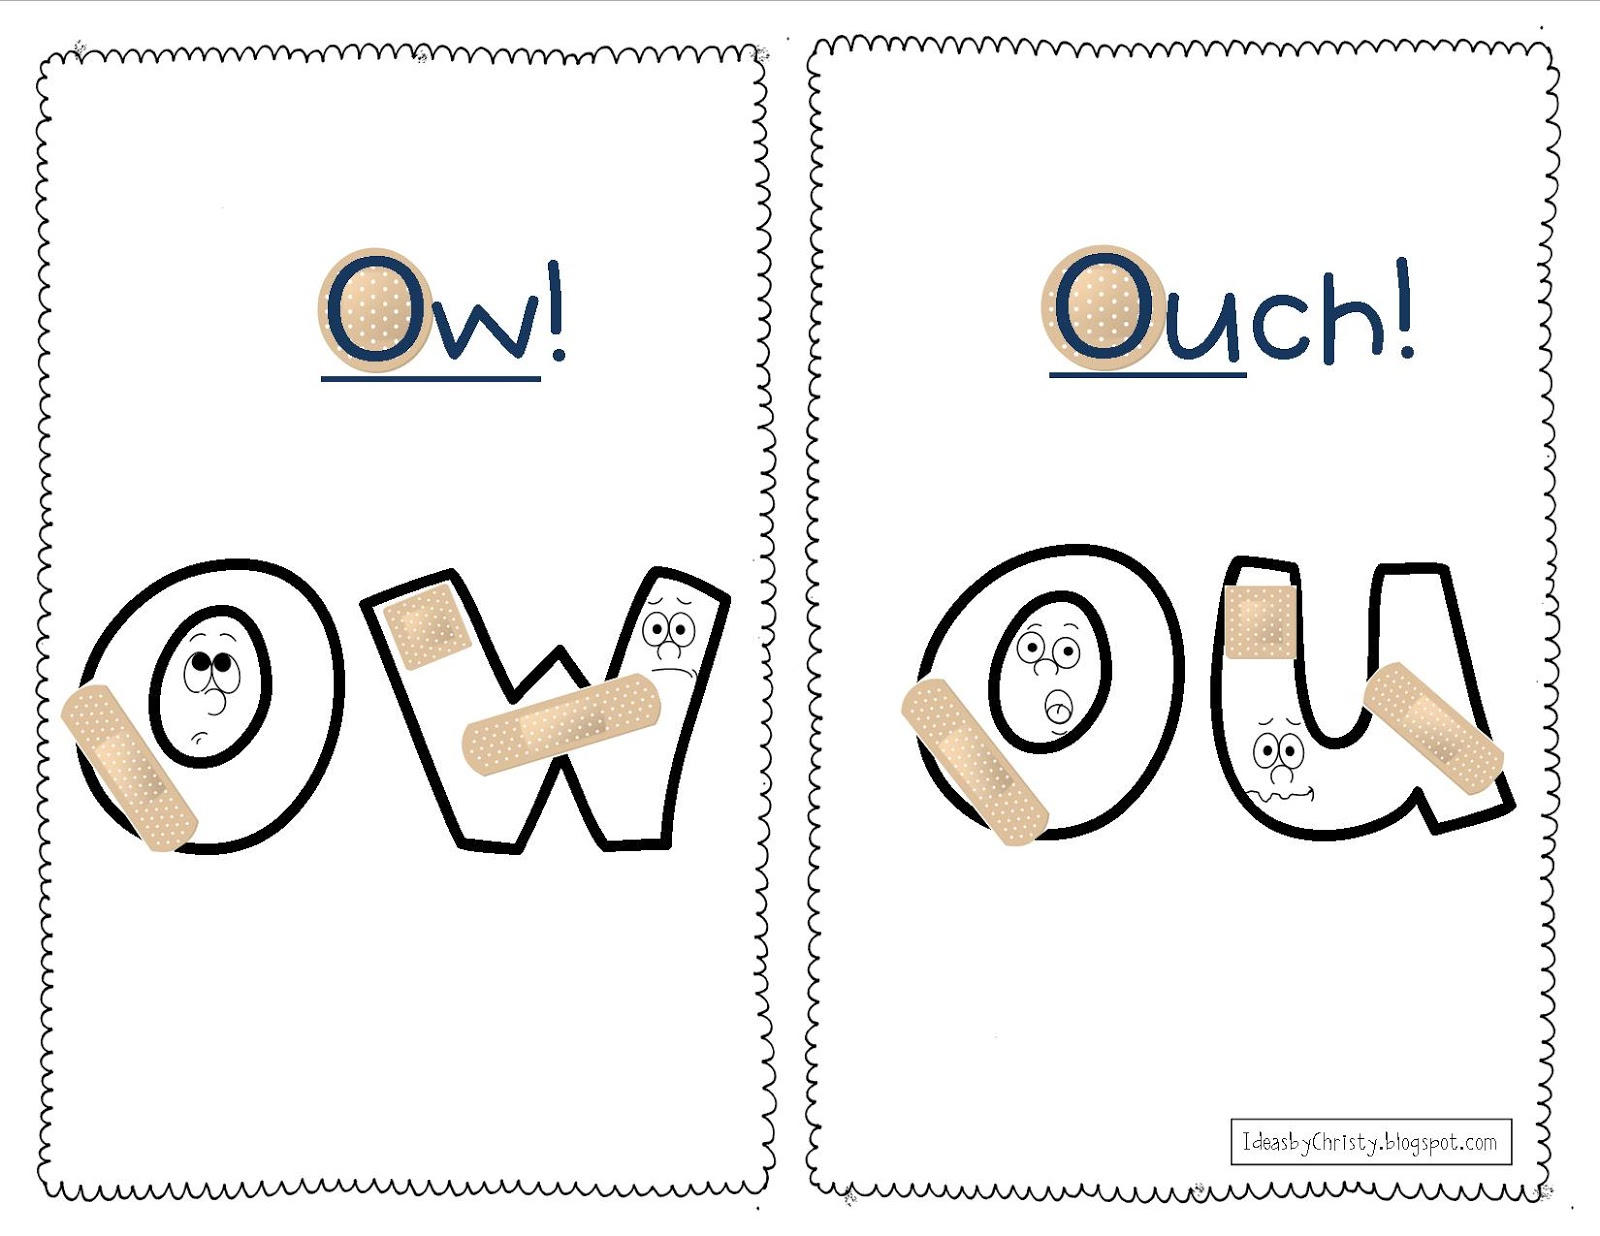 Ideas by Christy: Ow & Ou Digraphs